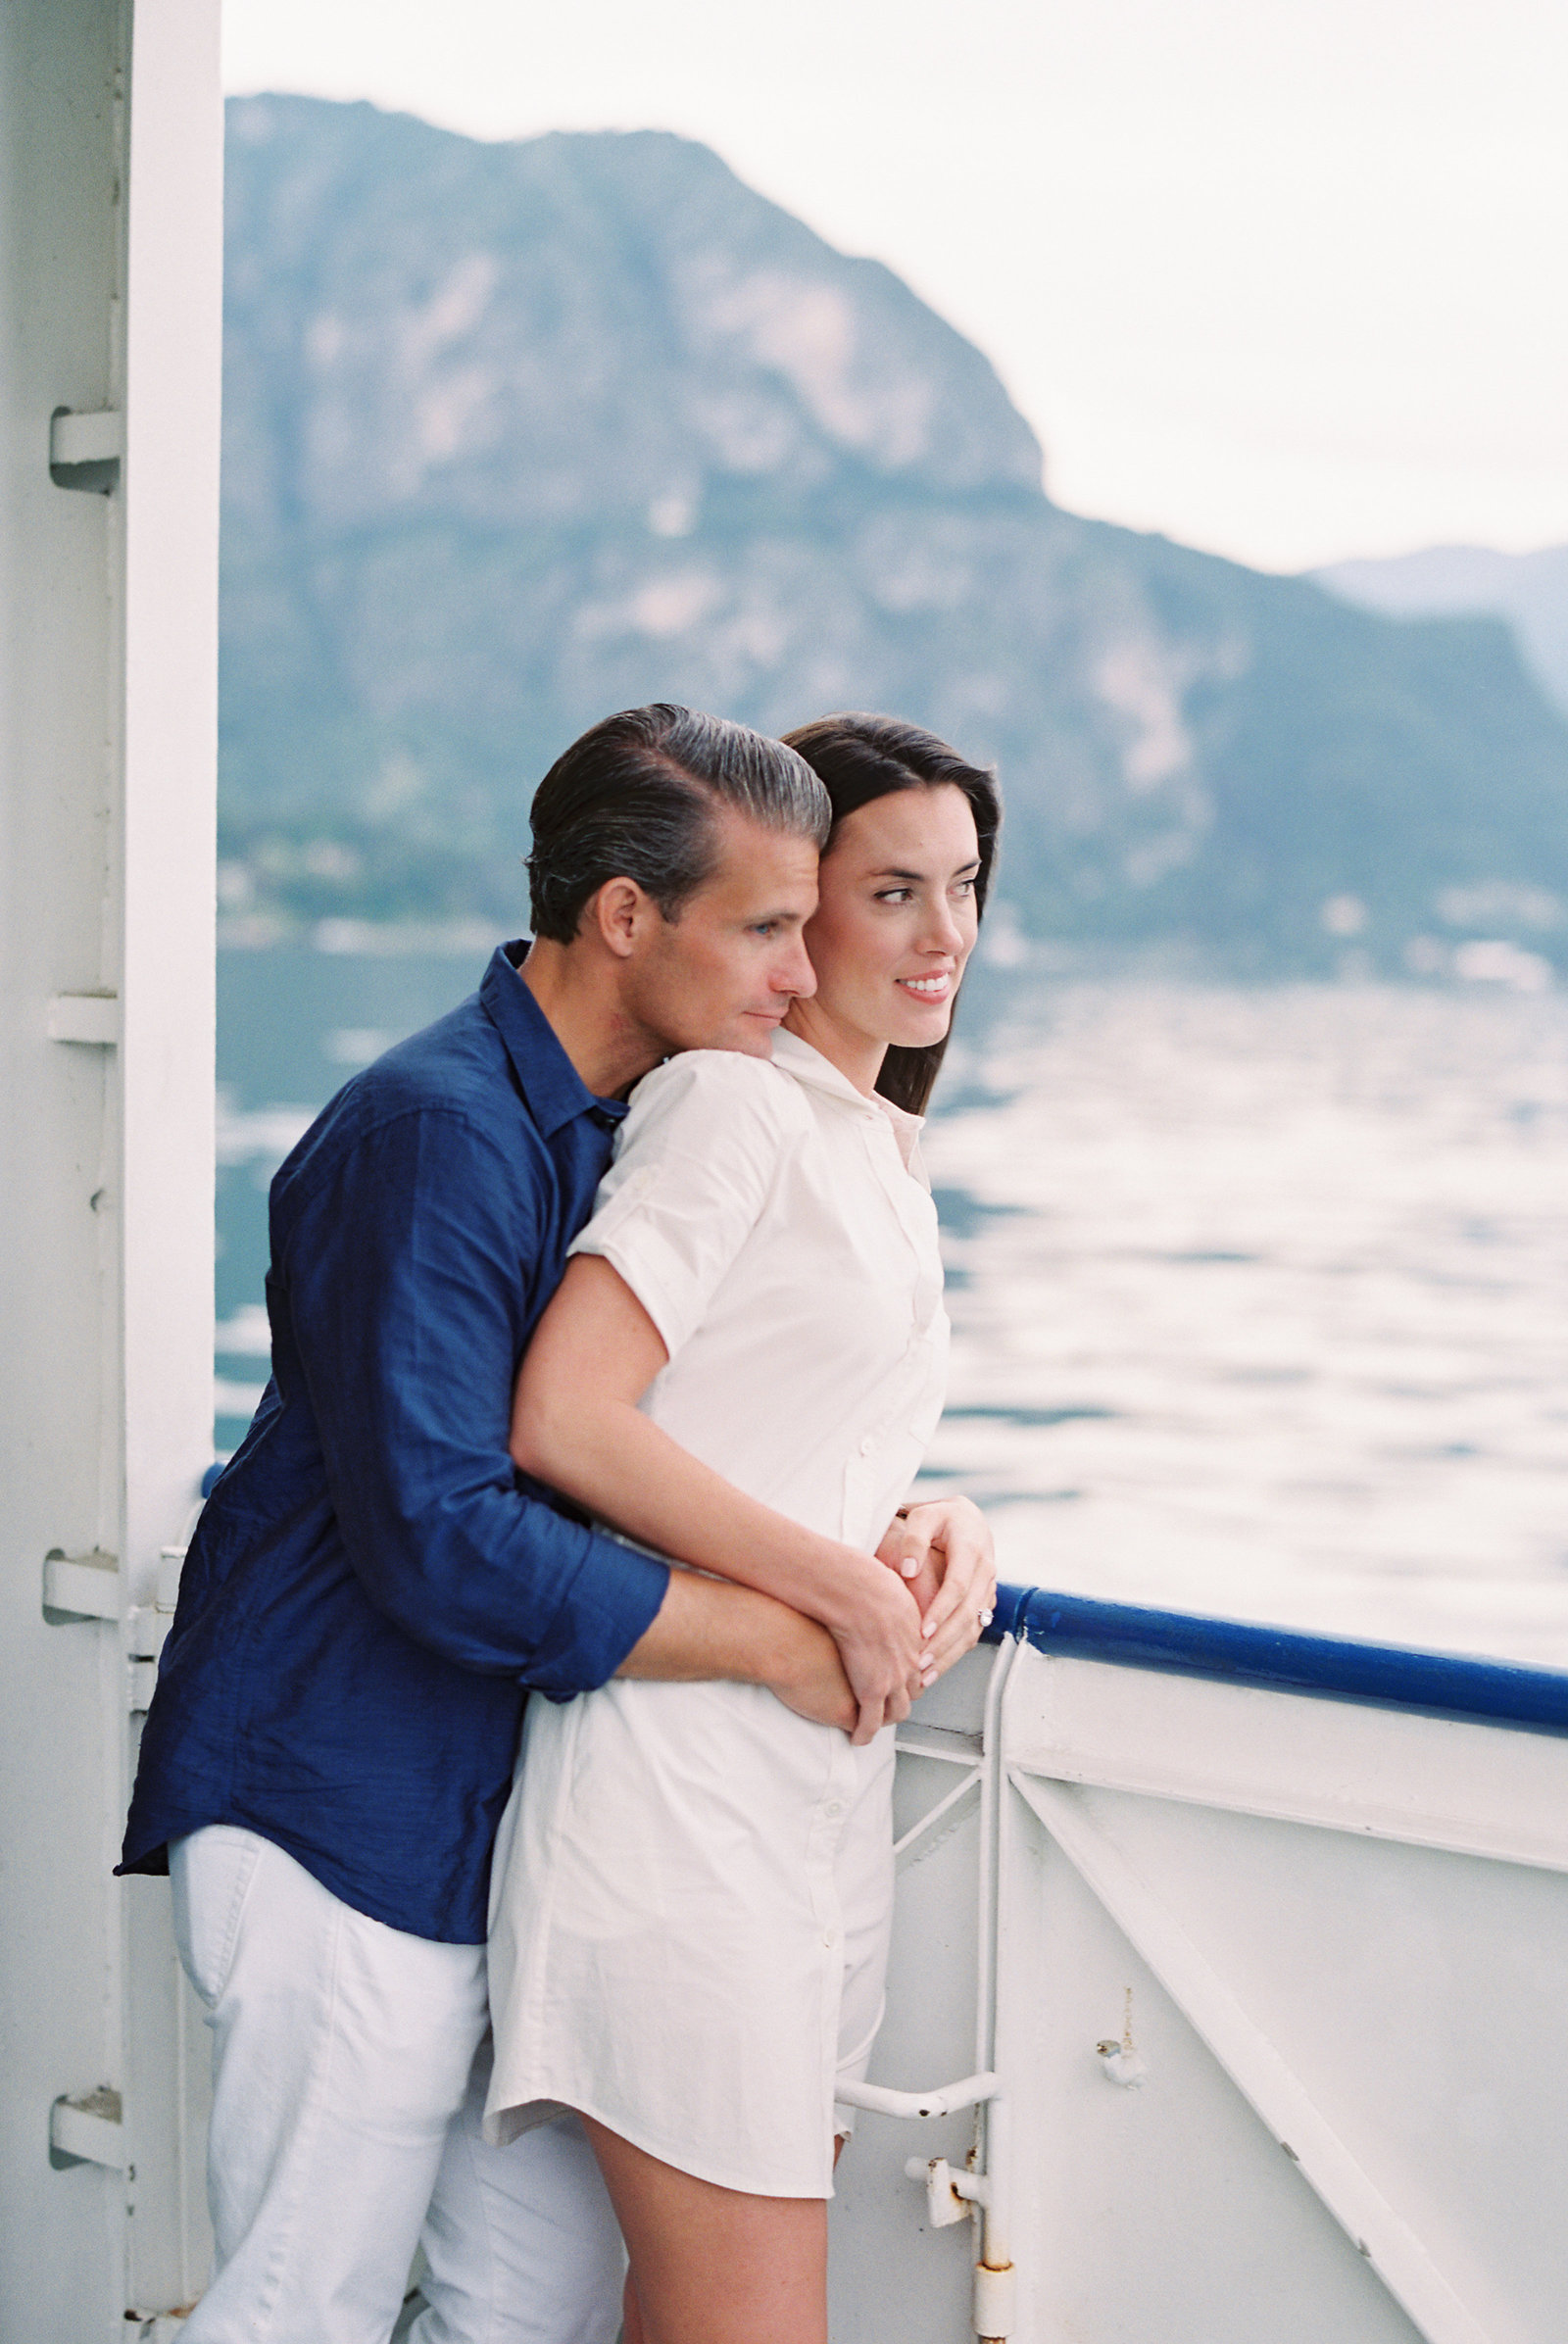 lake-como-italy-destination-wedding-honeymoon-session-melanie-gabrielle-photogrpahy-015